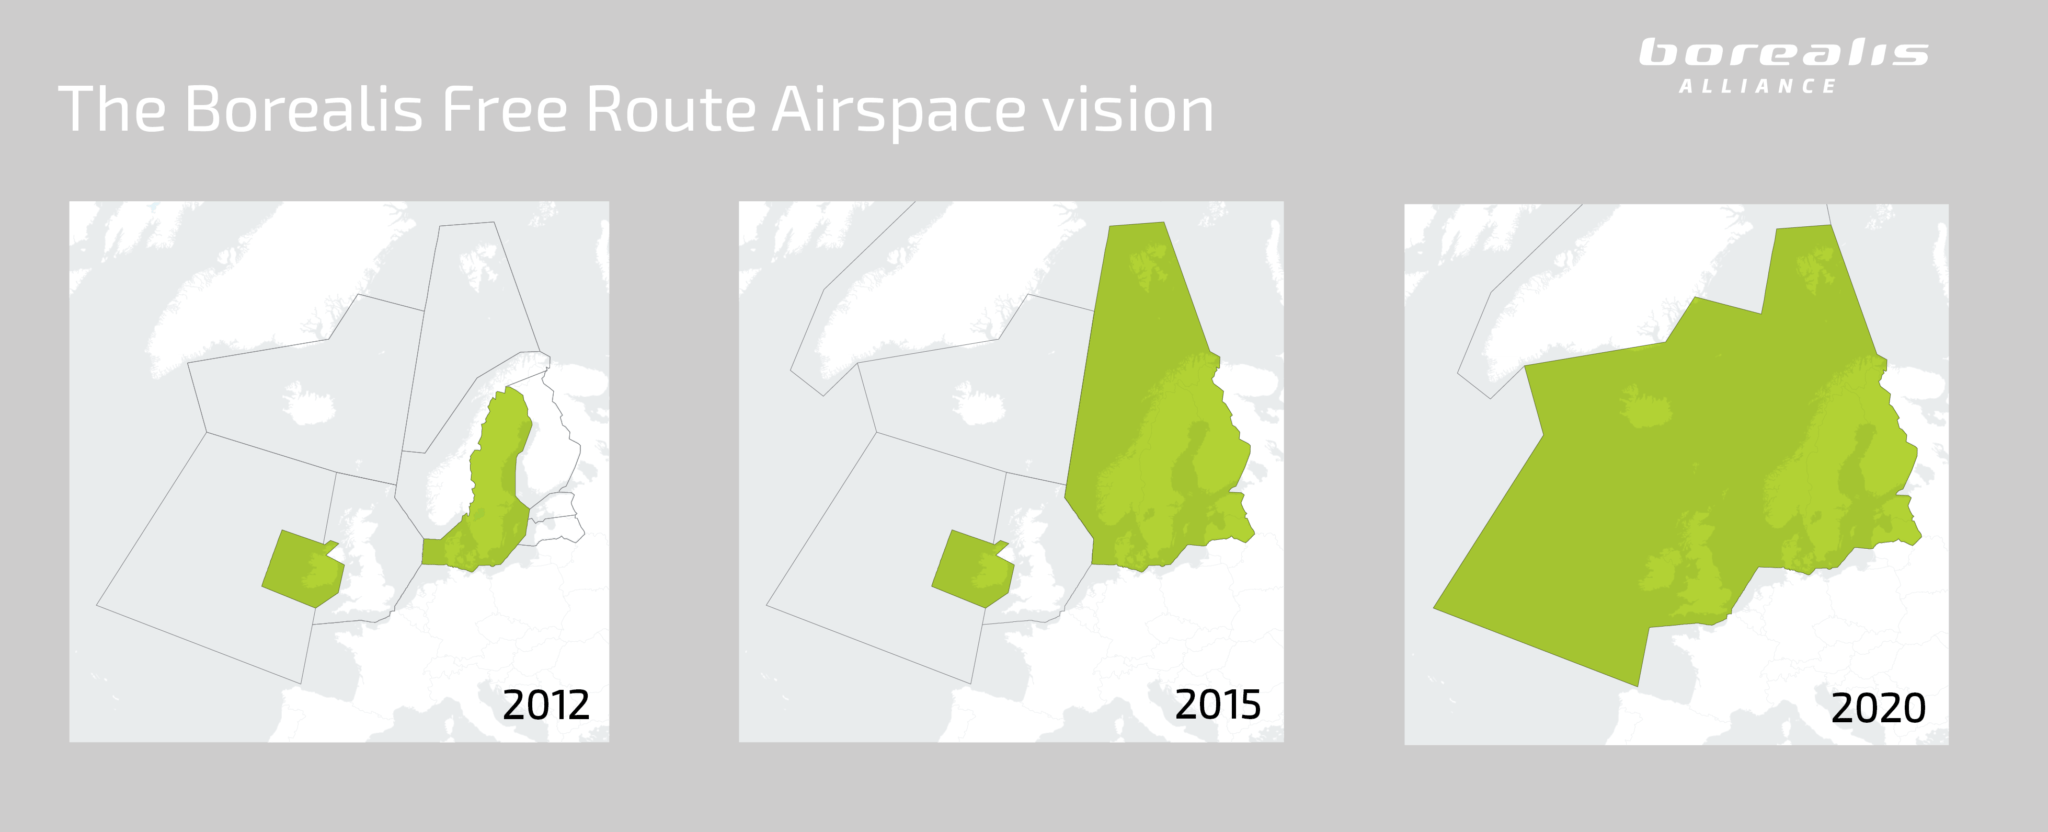 Borealis Free Route Airspace Vision